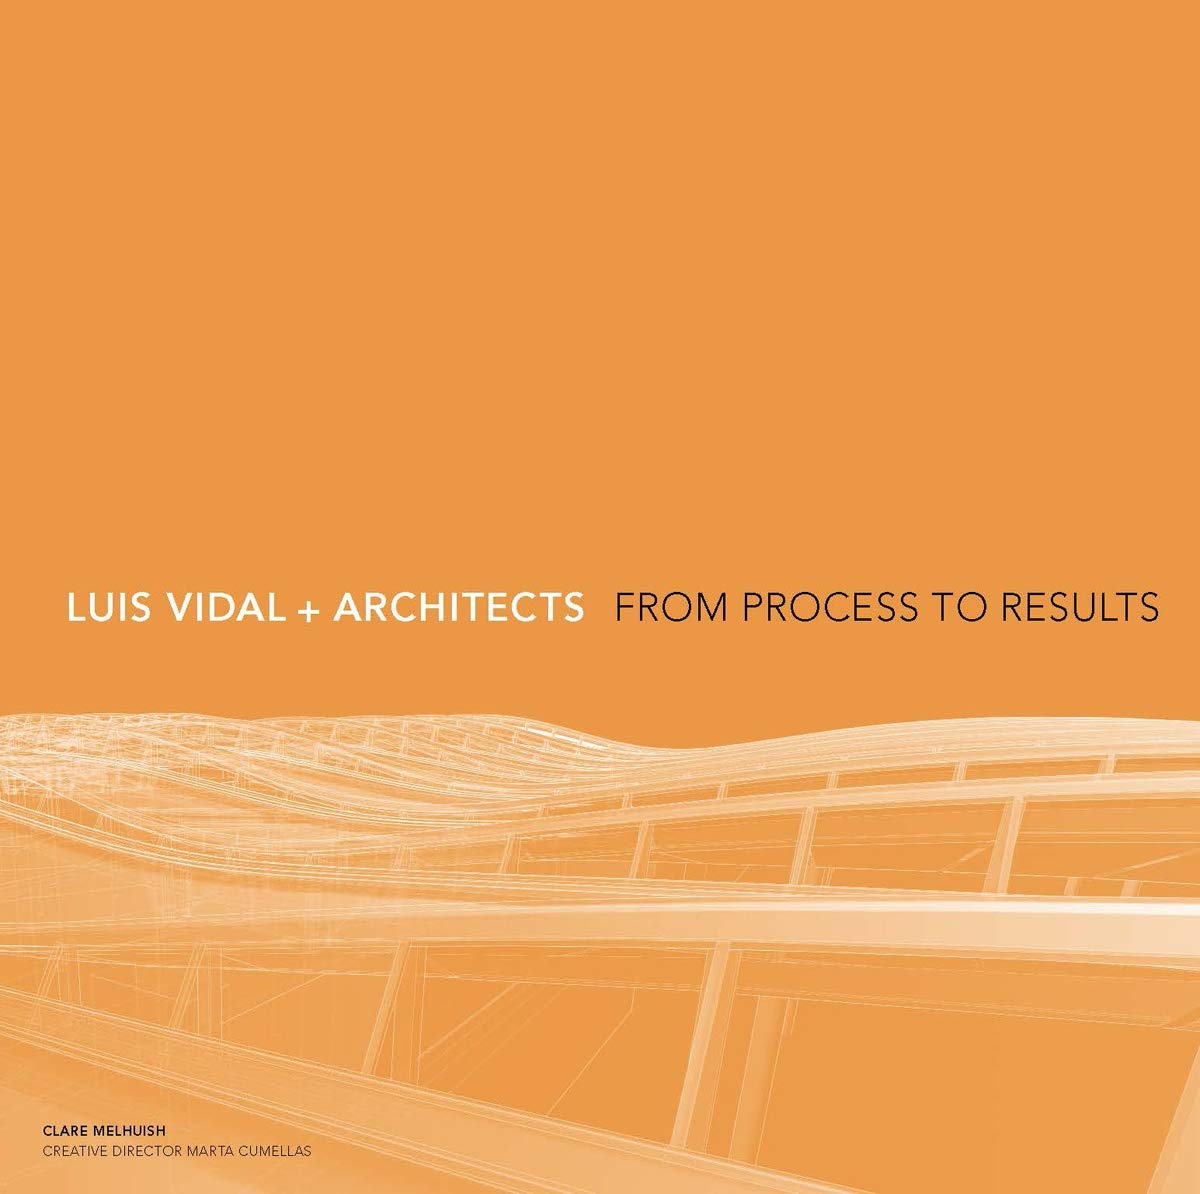 Luis Vidal + Architects: From Process to Results